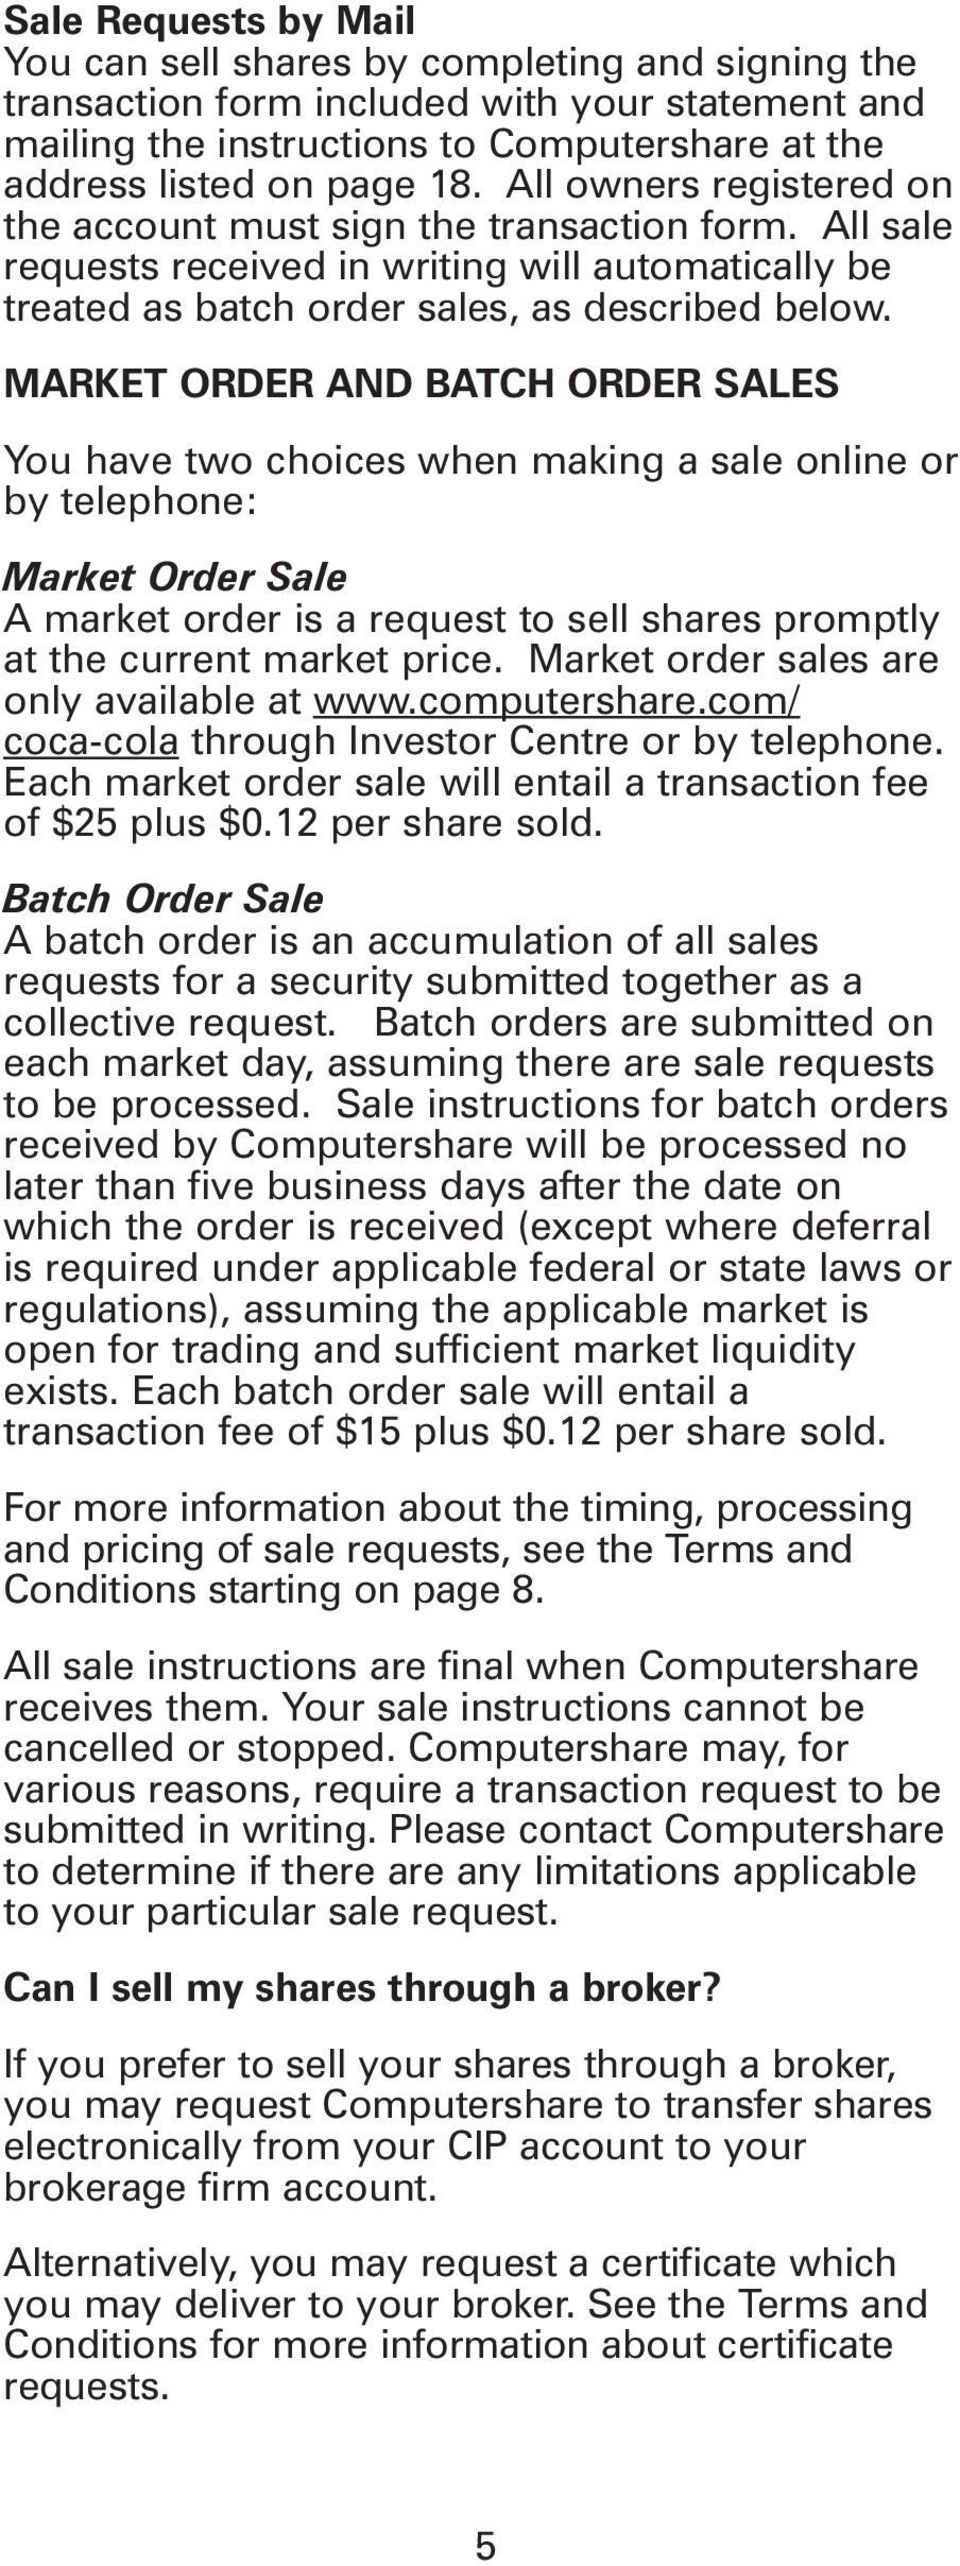 MARKET ORDER AND BATCH ORDER SALES You have two choices when making a sale online or by telephone: Market Order Sale A market order is a request to sell shares promptly at the current market price.